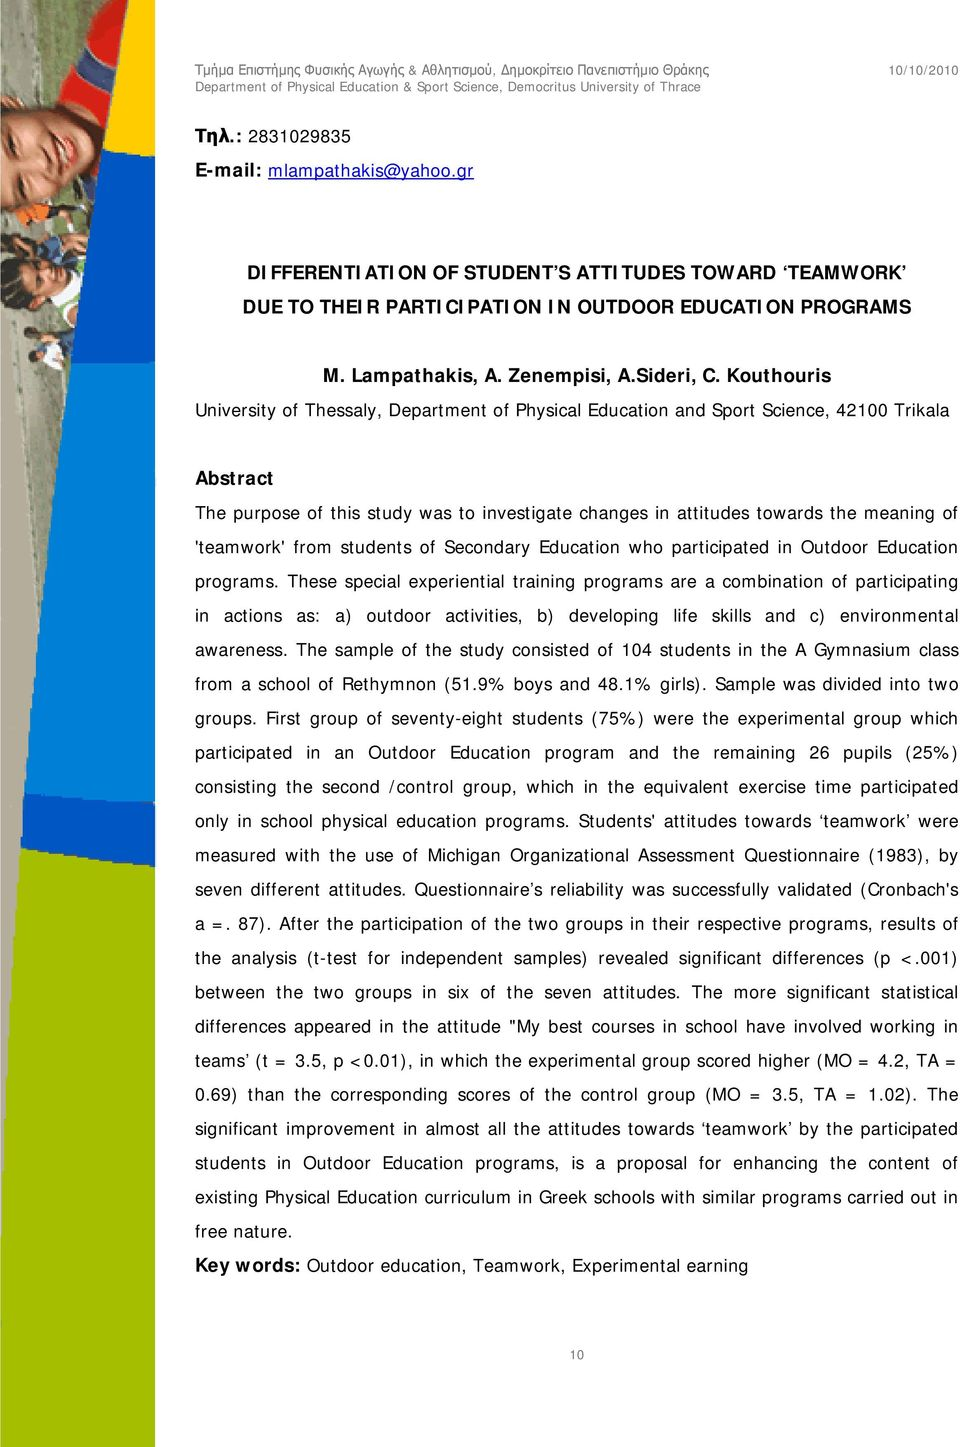 Kouthouris University of Thessaly, Department of Physical Education and Sport Science, 42100 Trikala Abstract The purpose of this study was to investigate changes in attitudes towards the meaning of